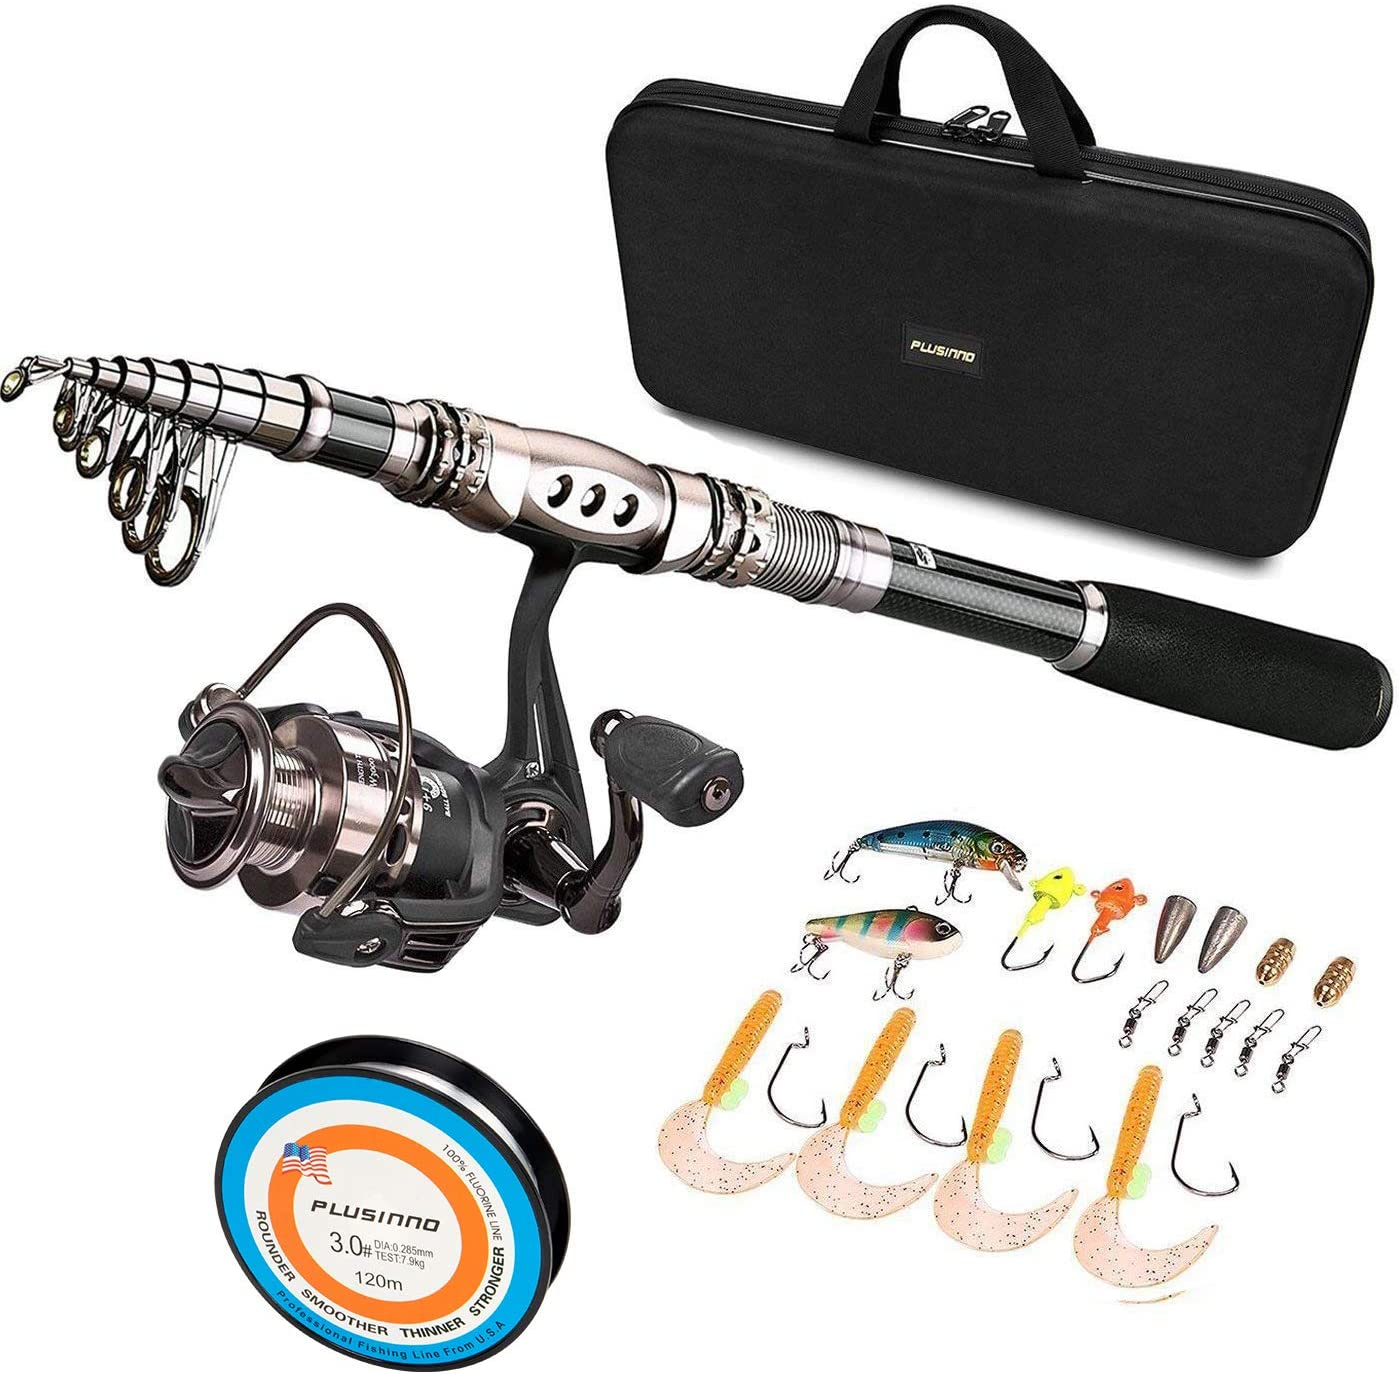 PLUSINNO® Spinning Rod and Reel Combos FULL KIT Telescopic Fishing Rod Pole with Reel Line Lures Hooks Fishing Carrier Bag Case and Accessories